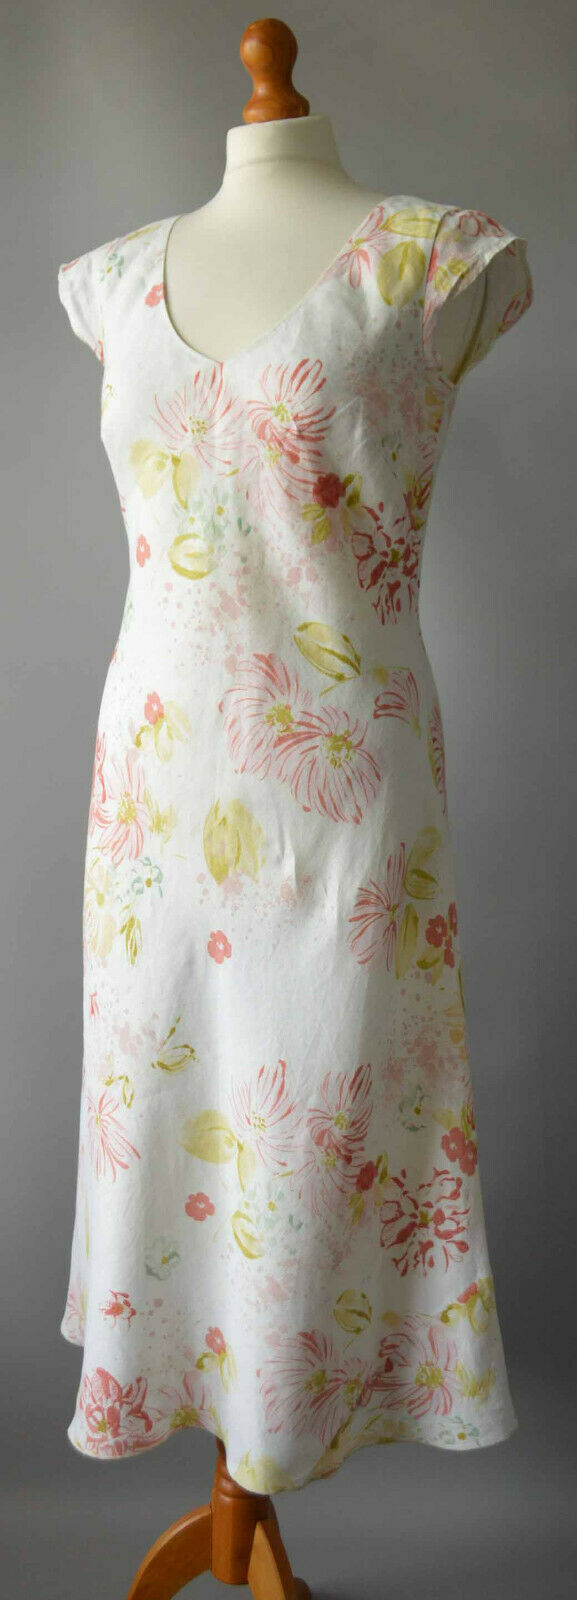 Ladies Patsy Seddon For Phase Eight White & Pink Floral Linen Dress Size UK 12